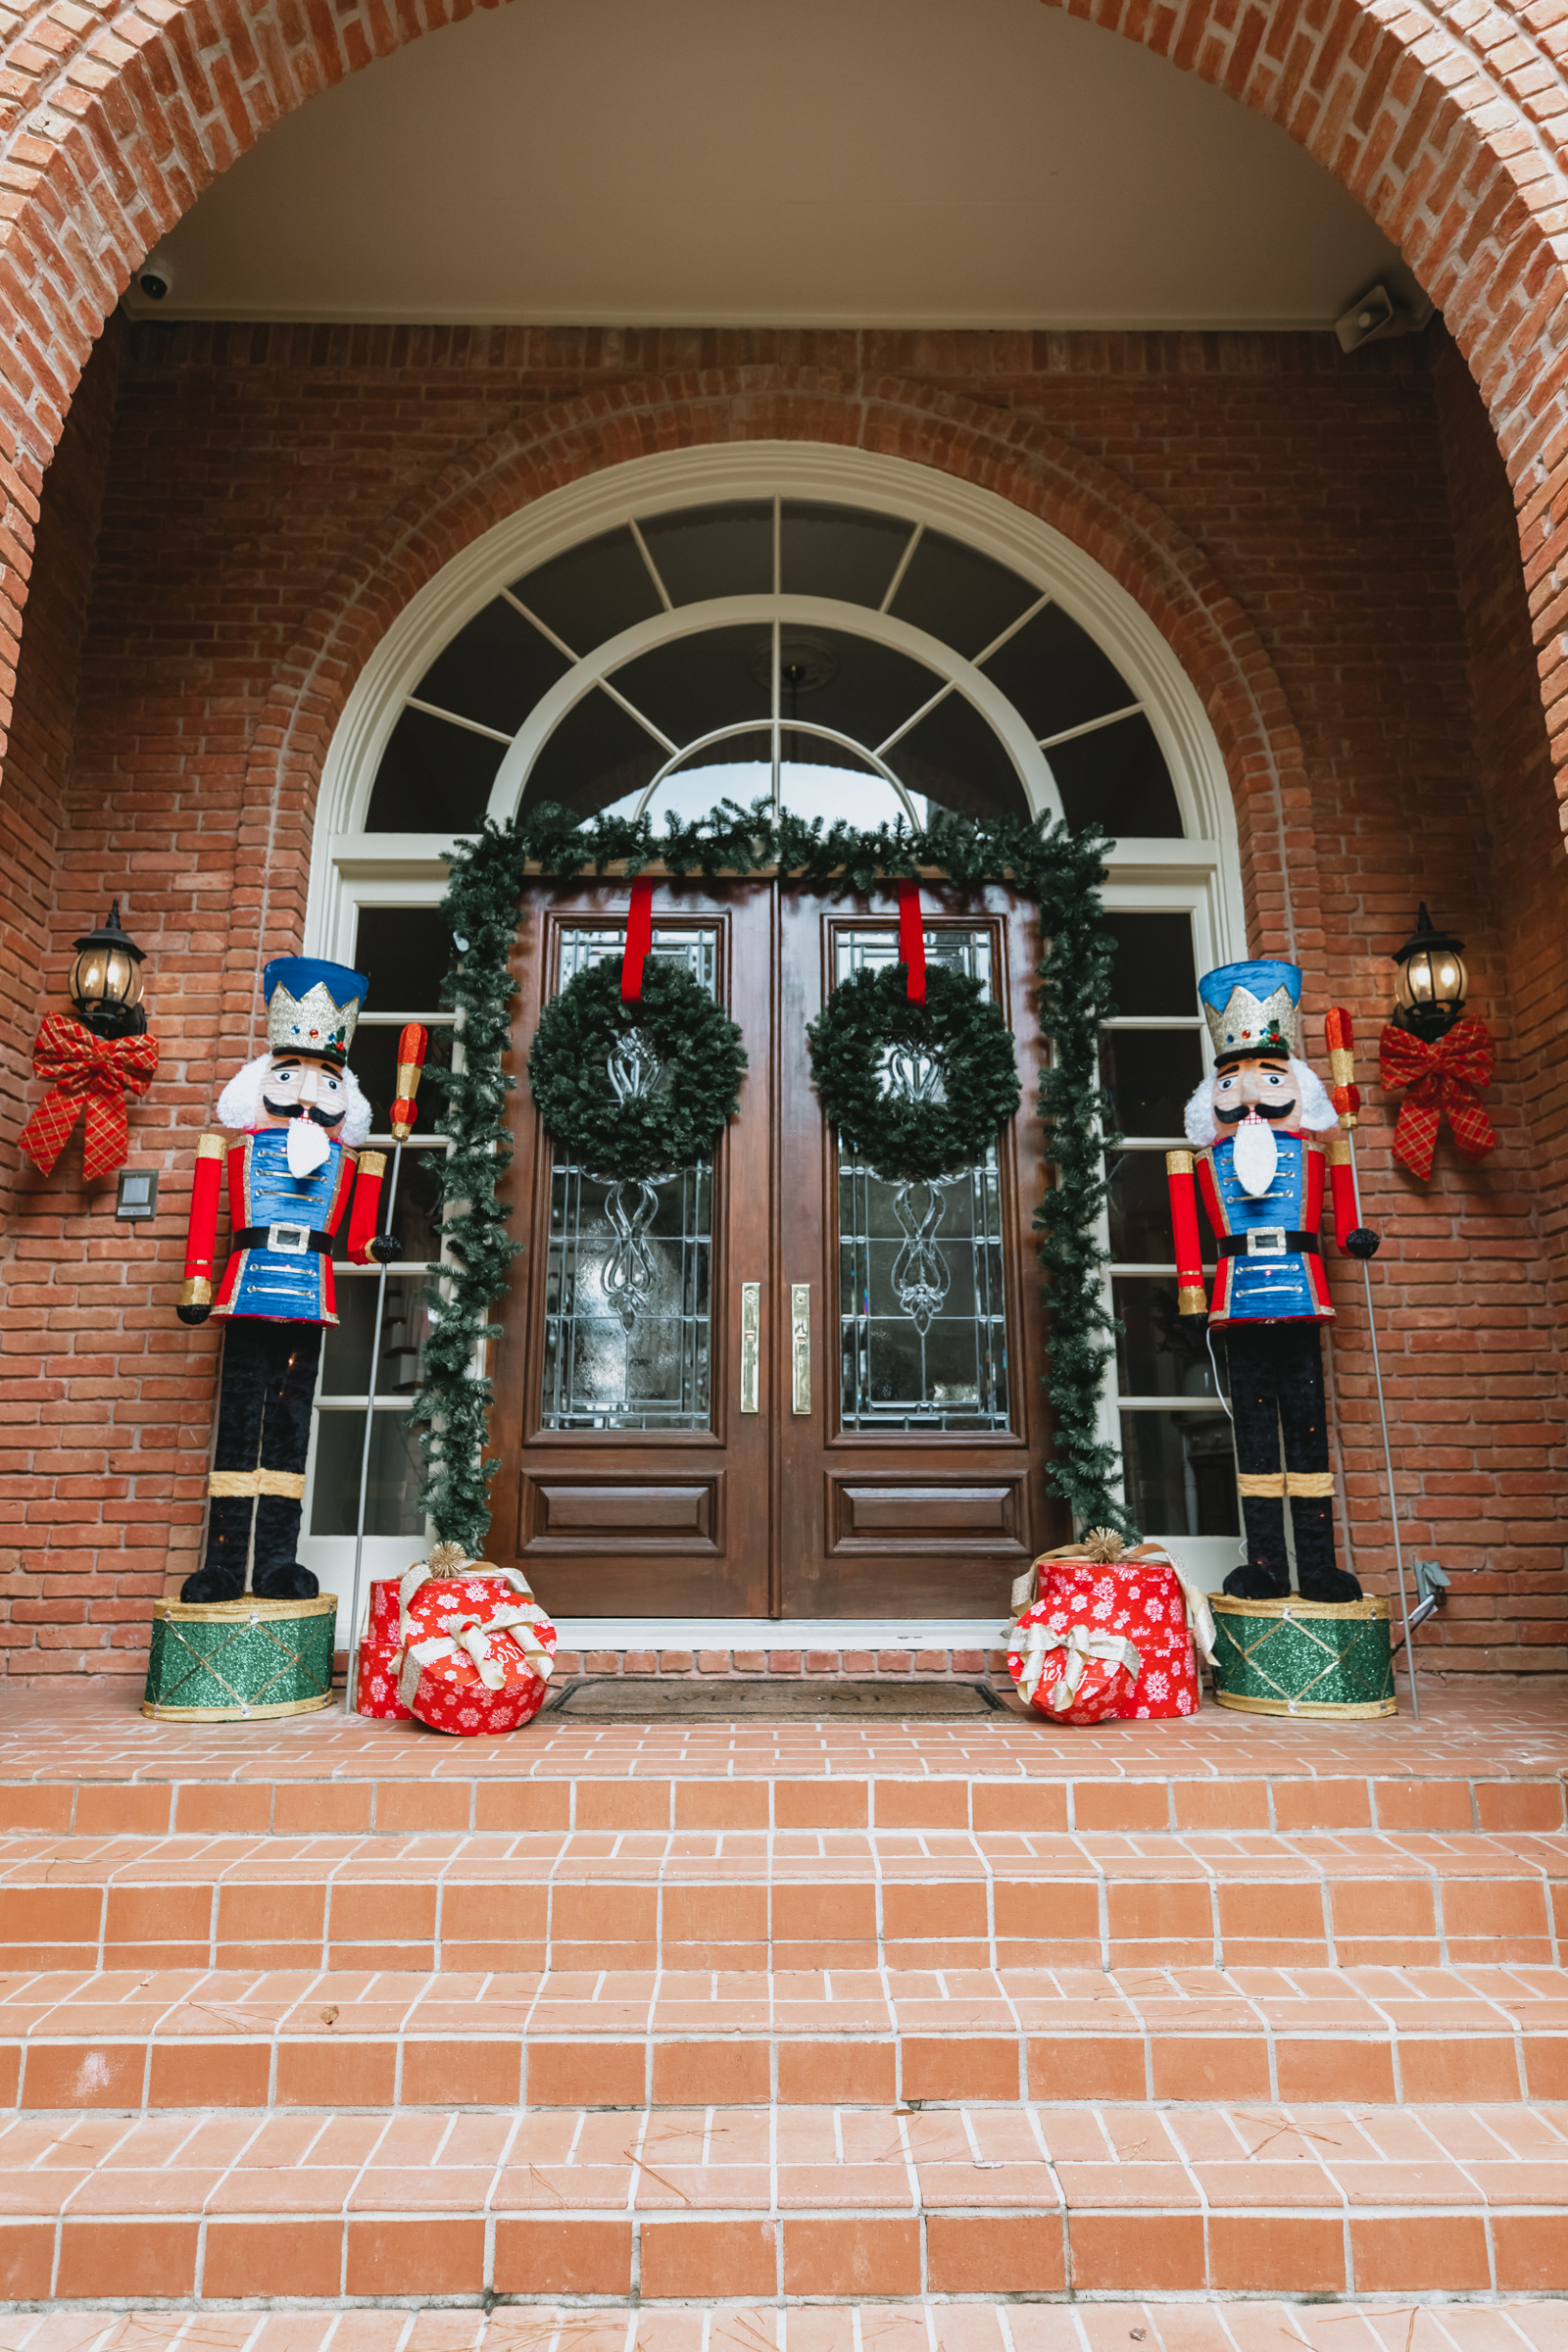 Front Porch Christmas Decorations // outside nutcracker porch decorations for Christmas